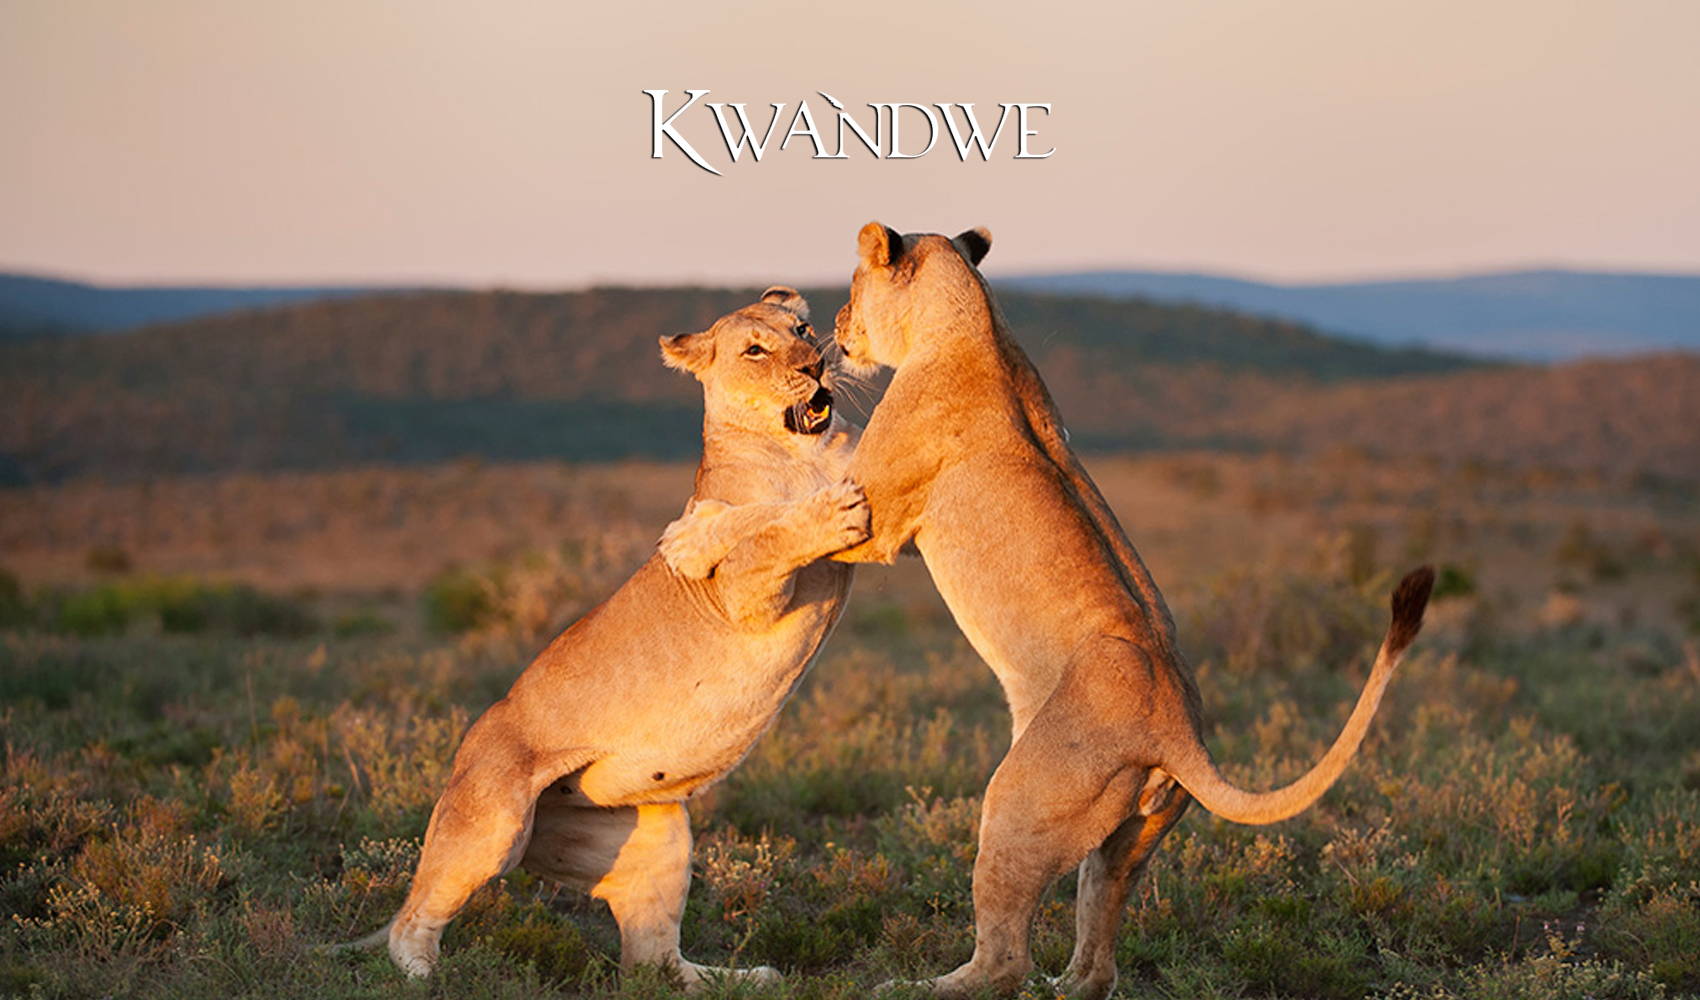 Kwandwe_Last_Minute_Getaway-Specials-Product-Page